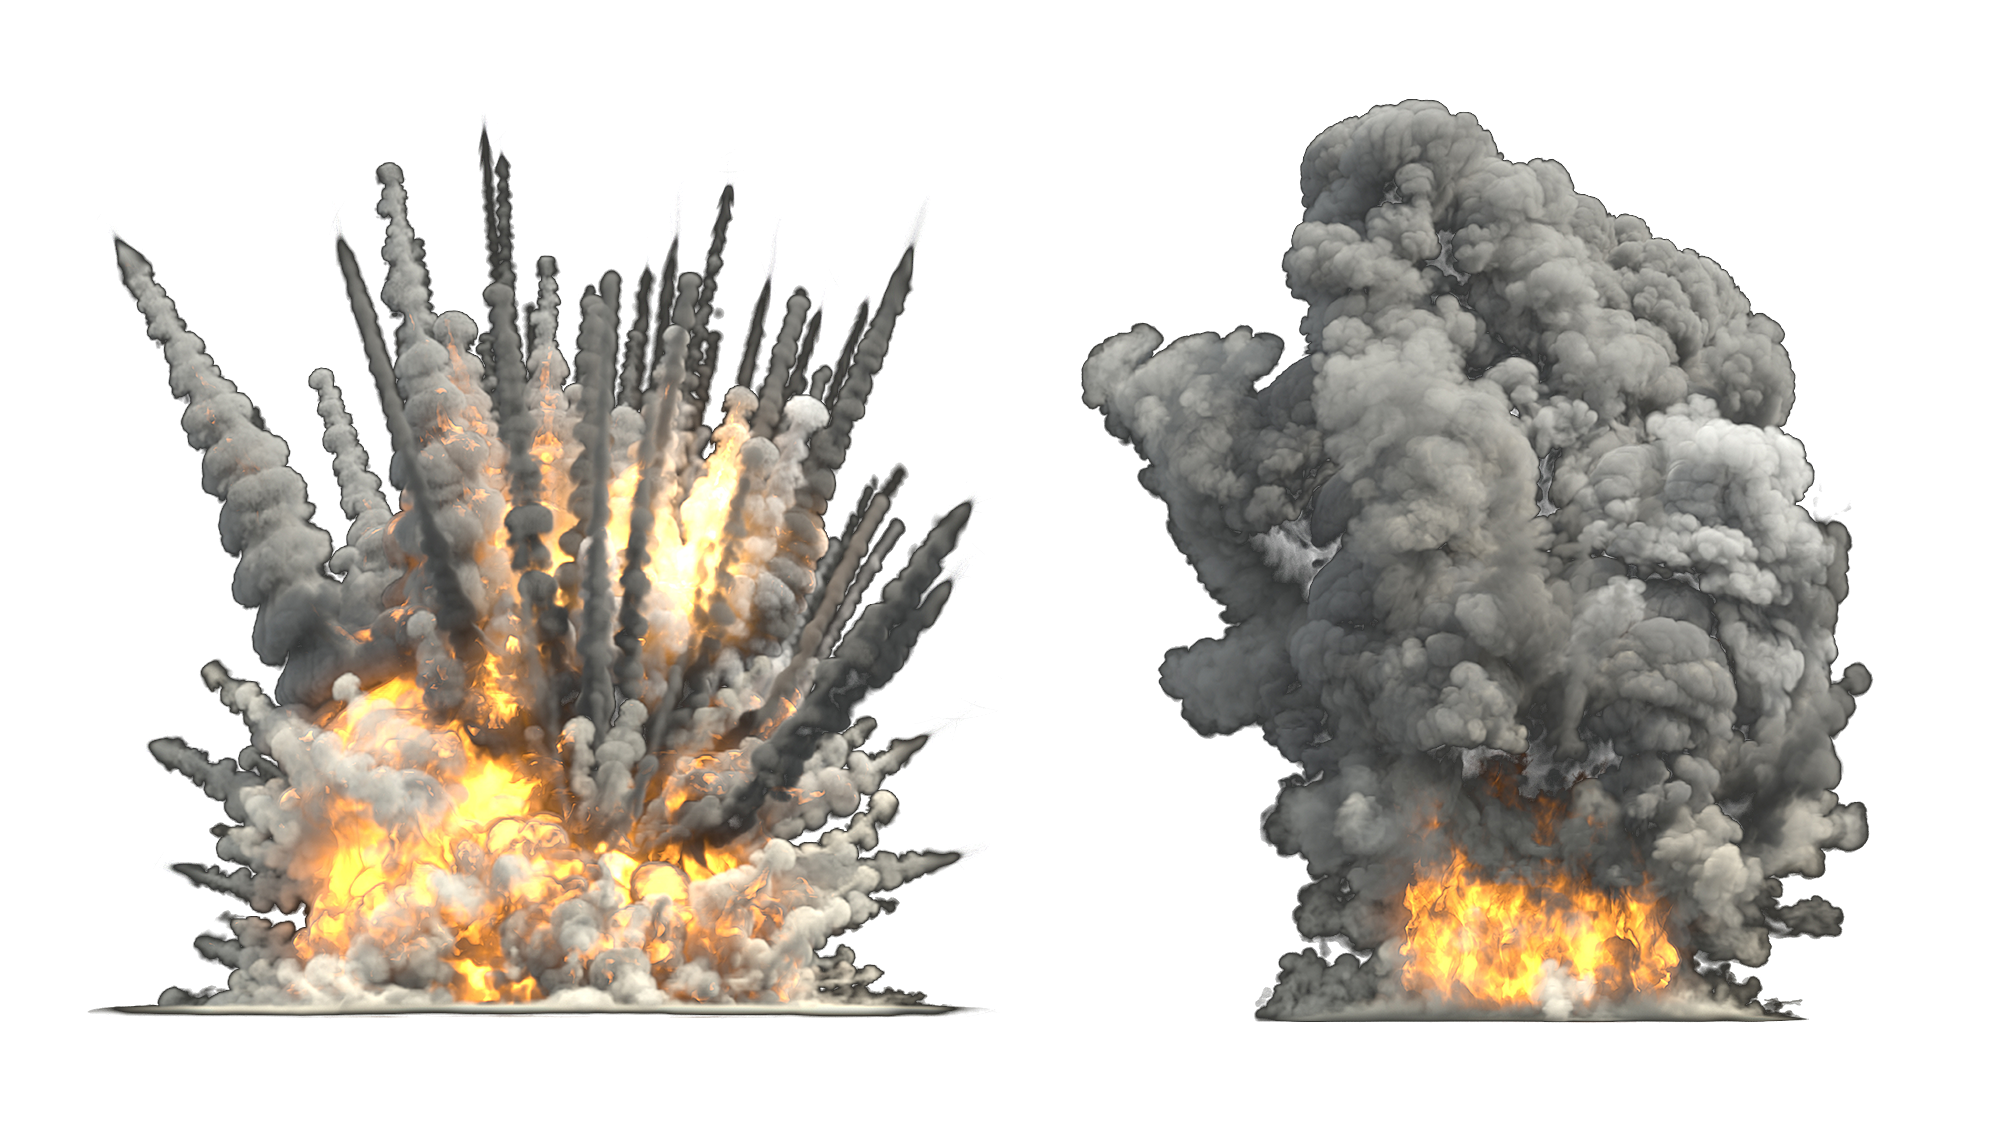 Mlg explosion png. Transparent images all clipart